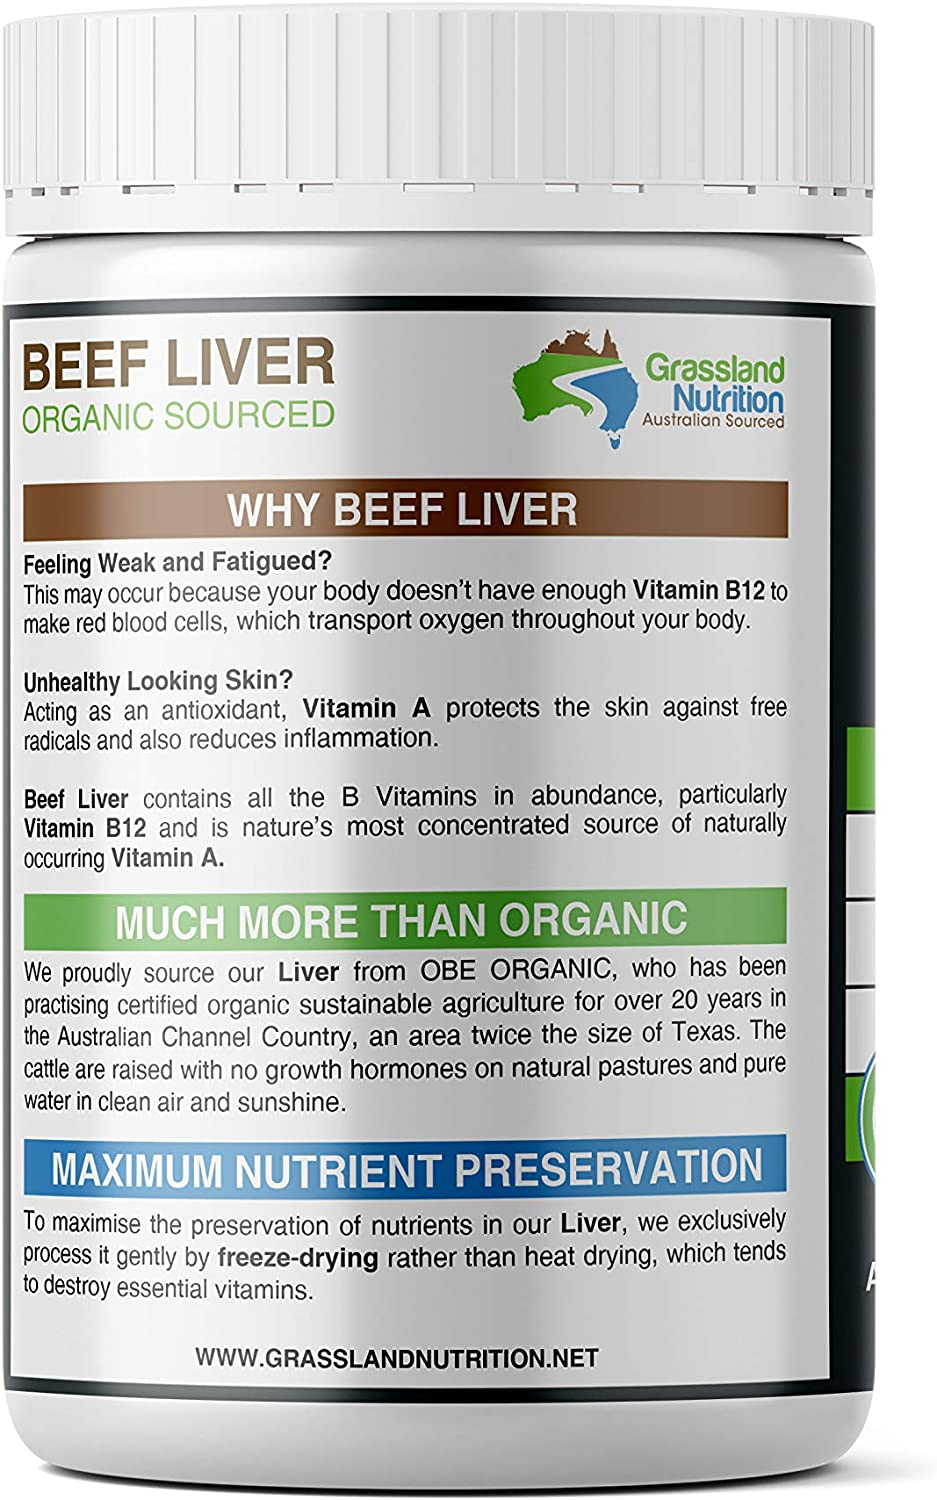 Amazon Com Grassland Nutrition Grass Fed Beef Liver 100 Organic Sourced Natural B12 For Energy Iron Vitamin A 180 Capsules Health Personal Care